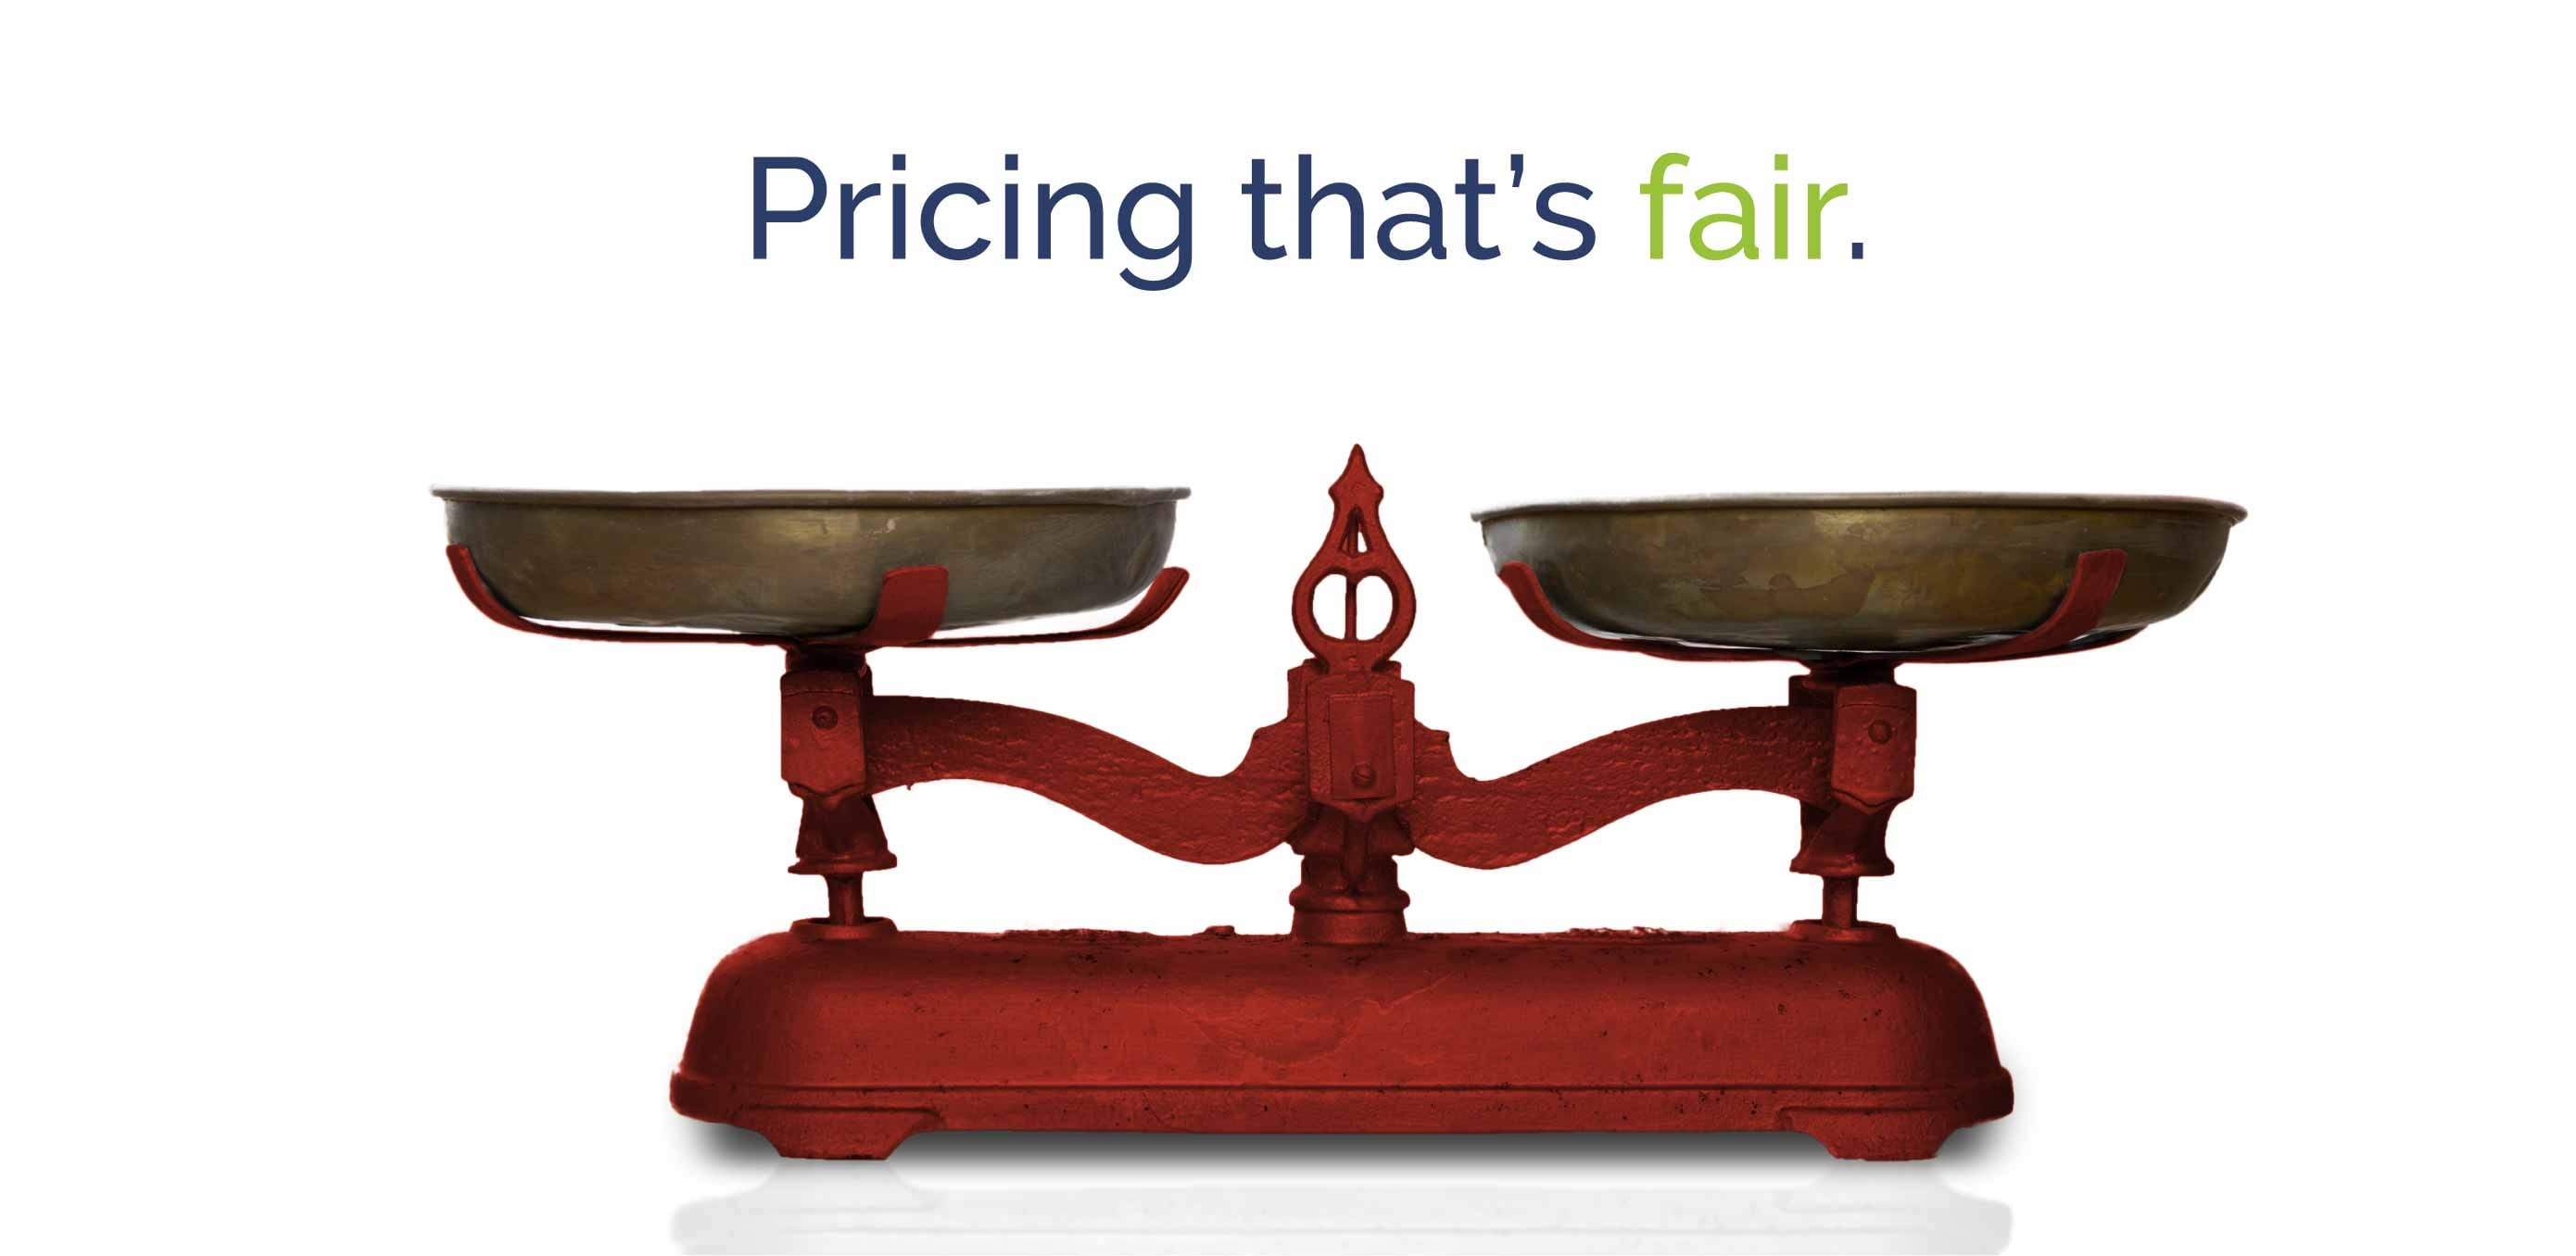 Fixed Fee Lawyers - Pricing That's Fair